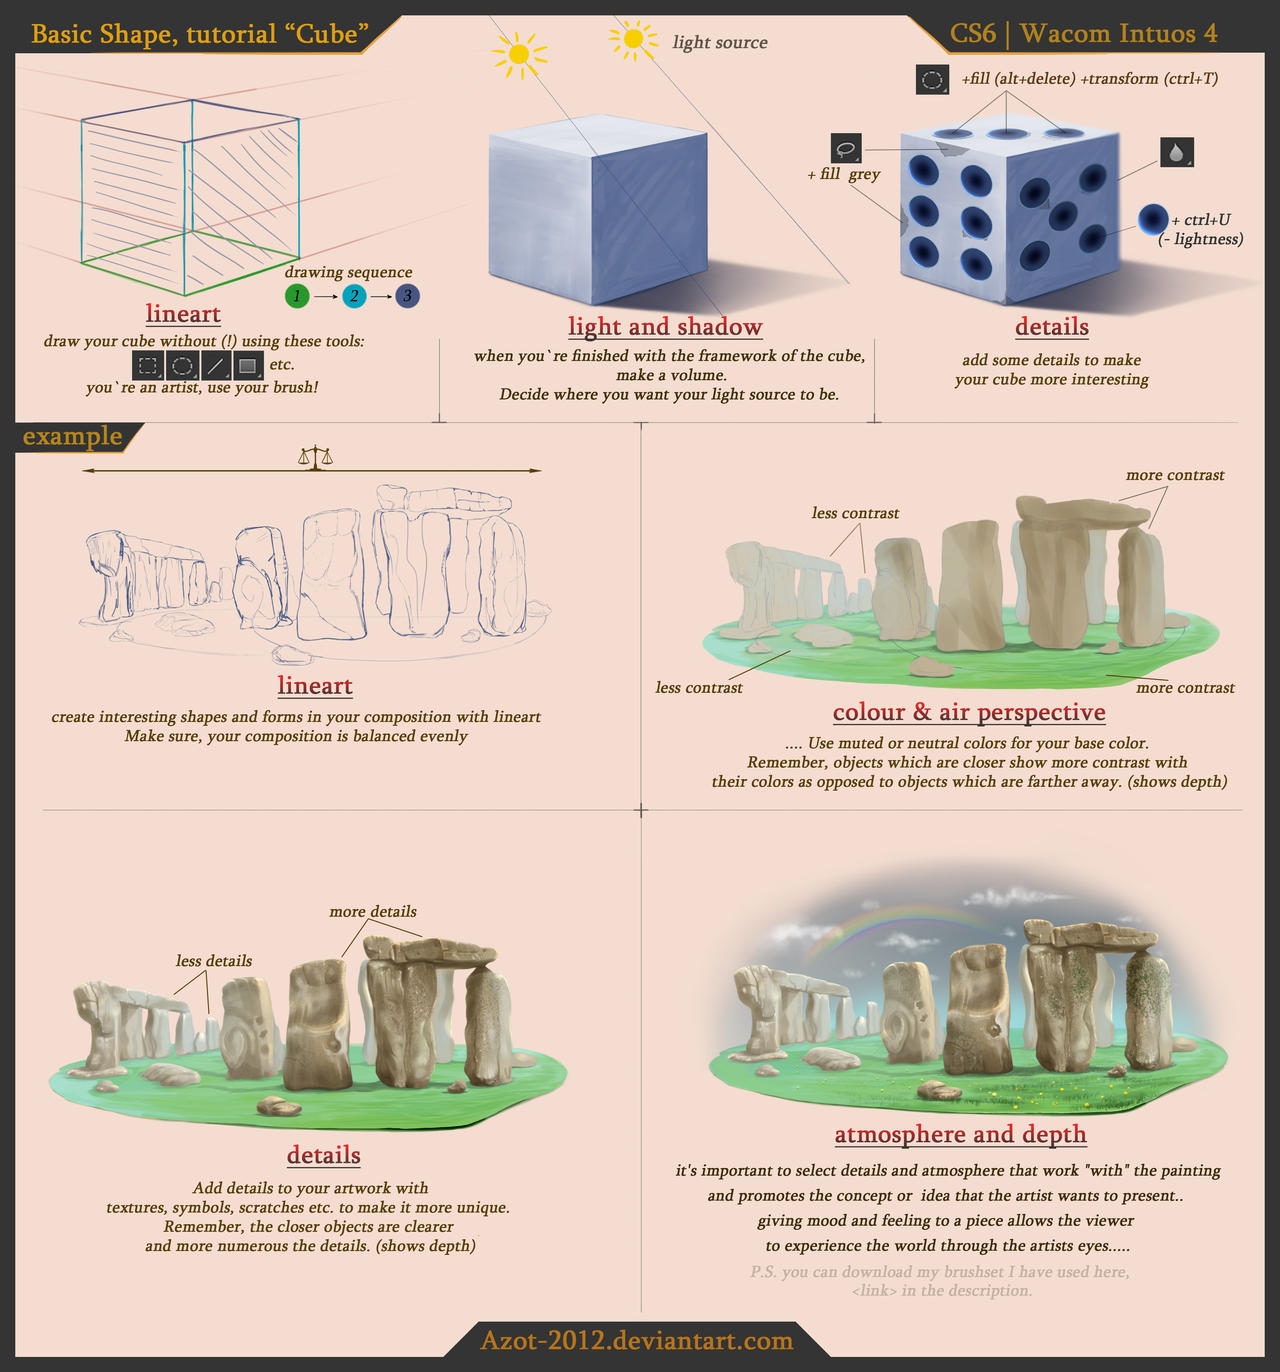 Cube tutorial by Azot2015